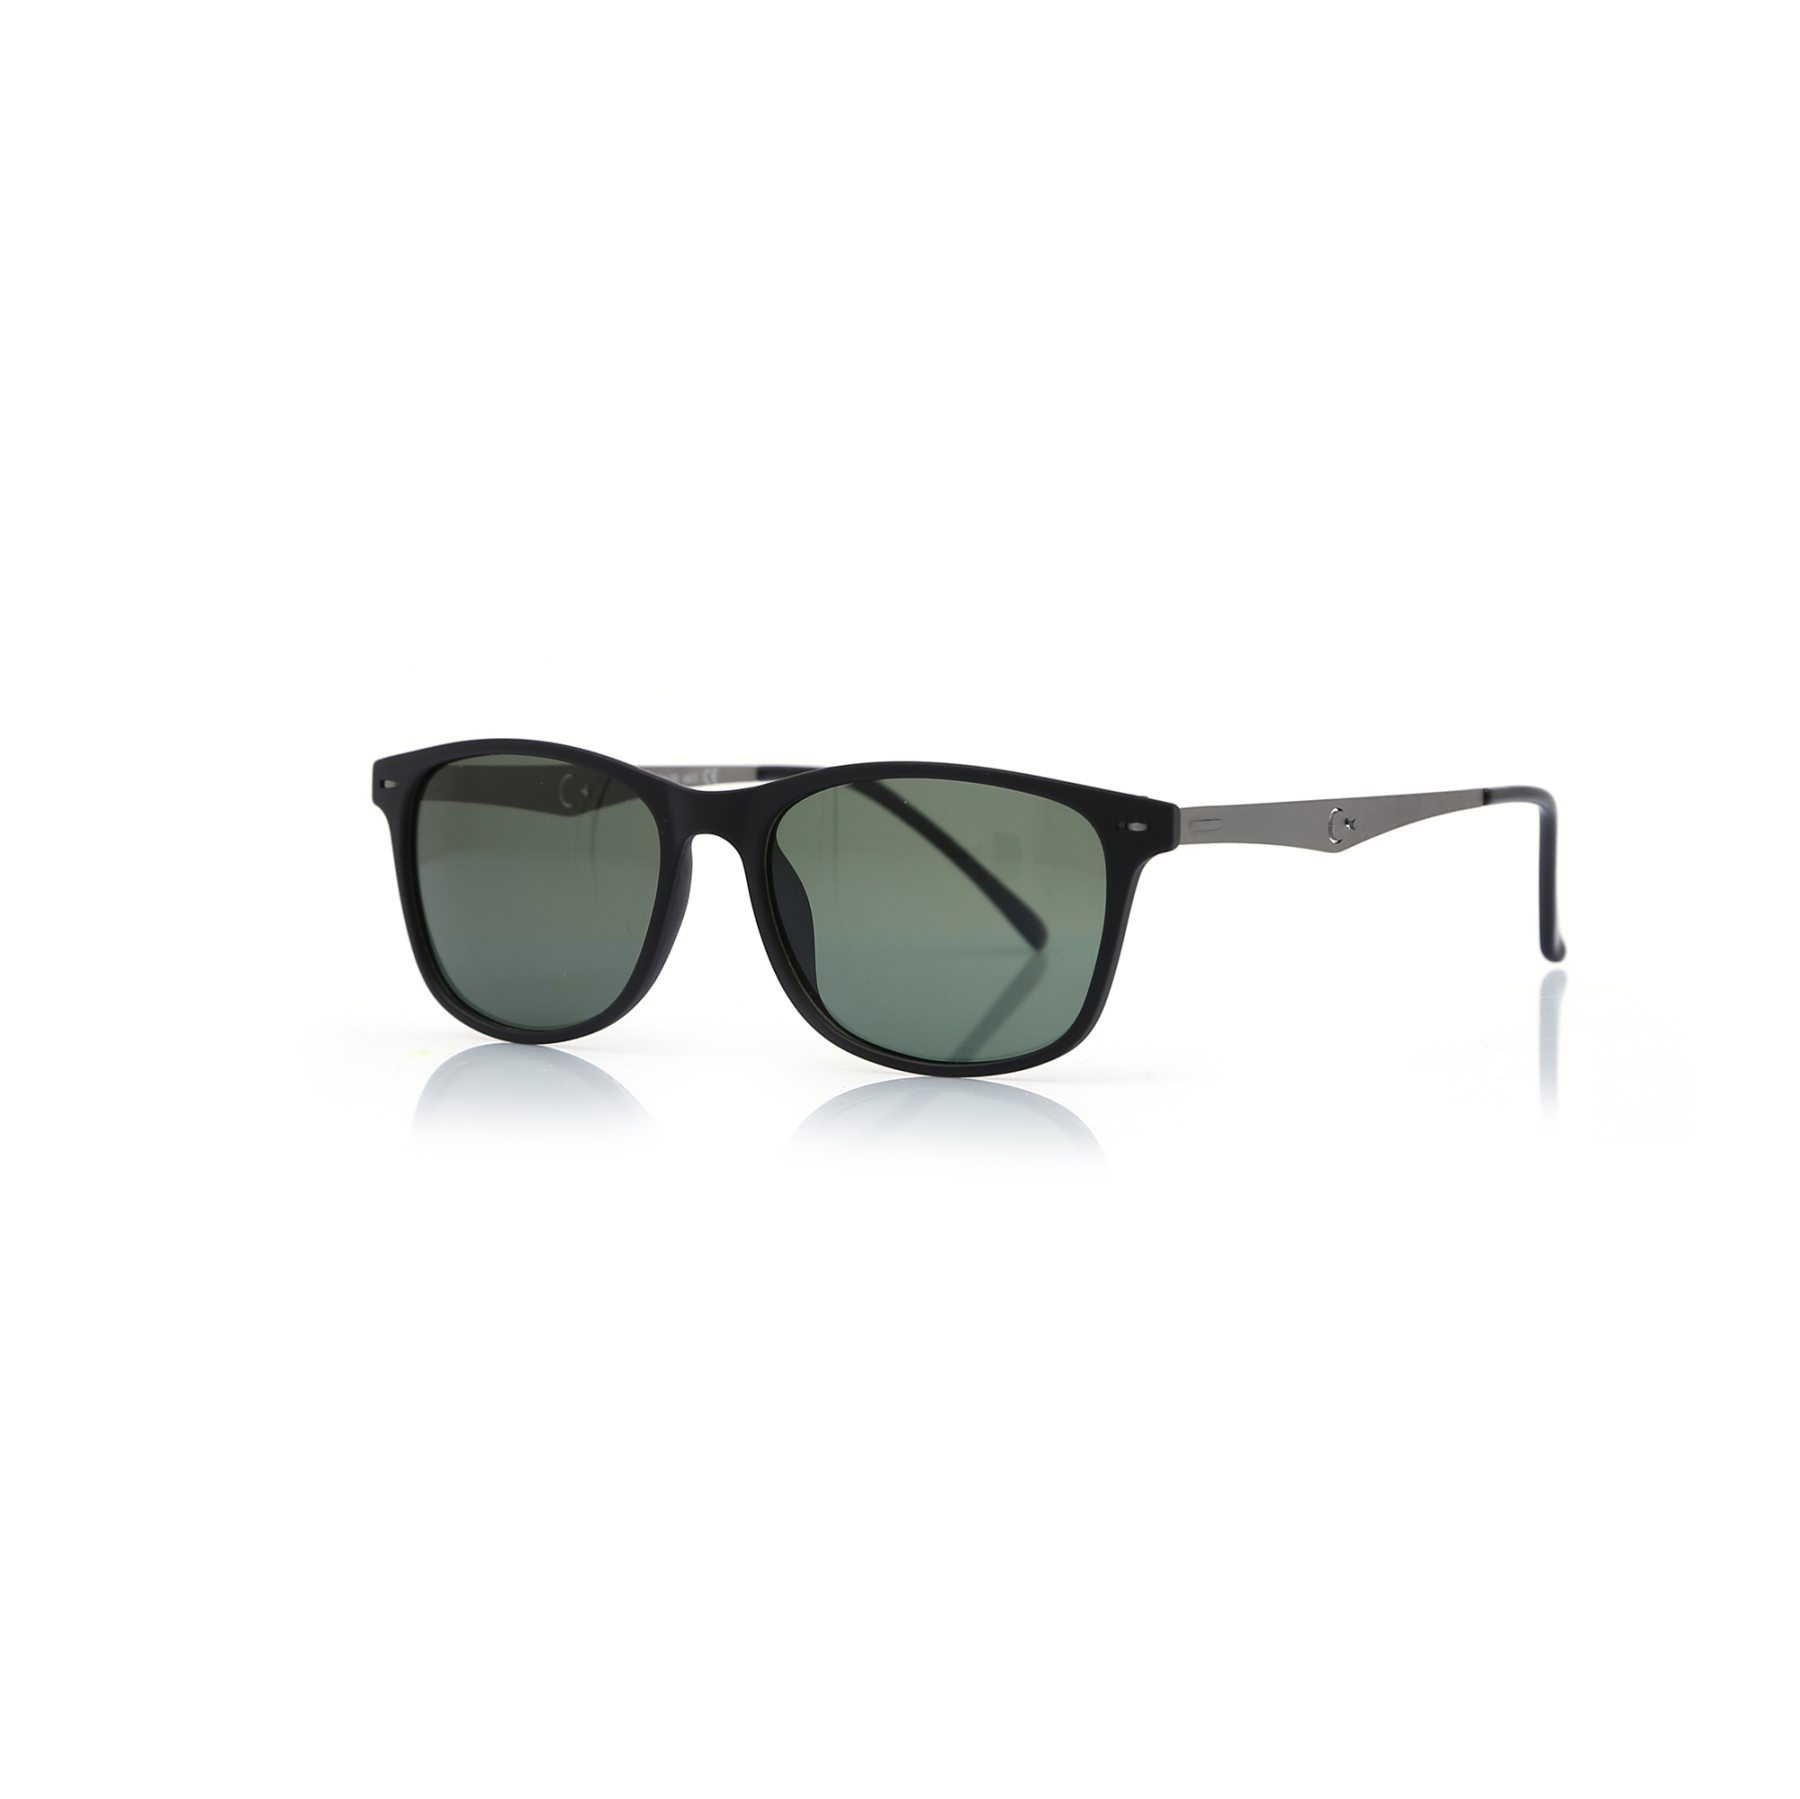 Unisex sunglasses sw 176 03 bone black organic square square 53-17-140 swing